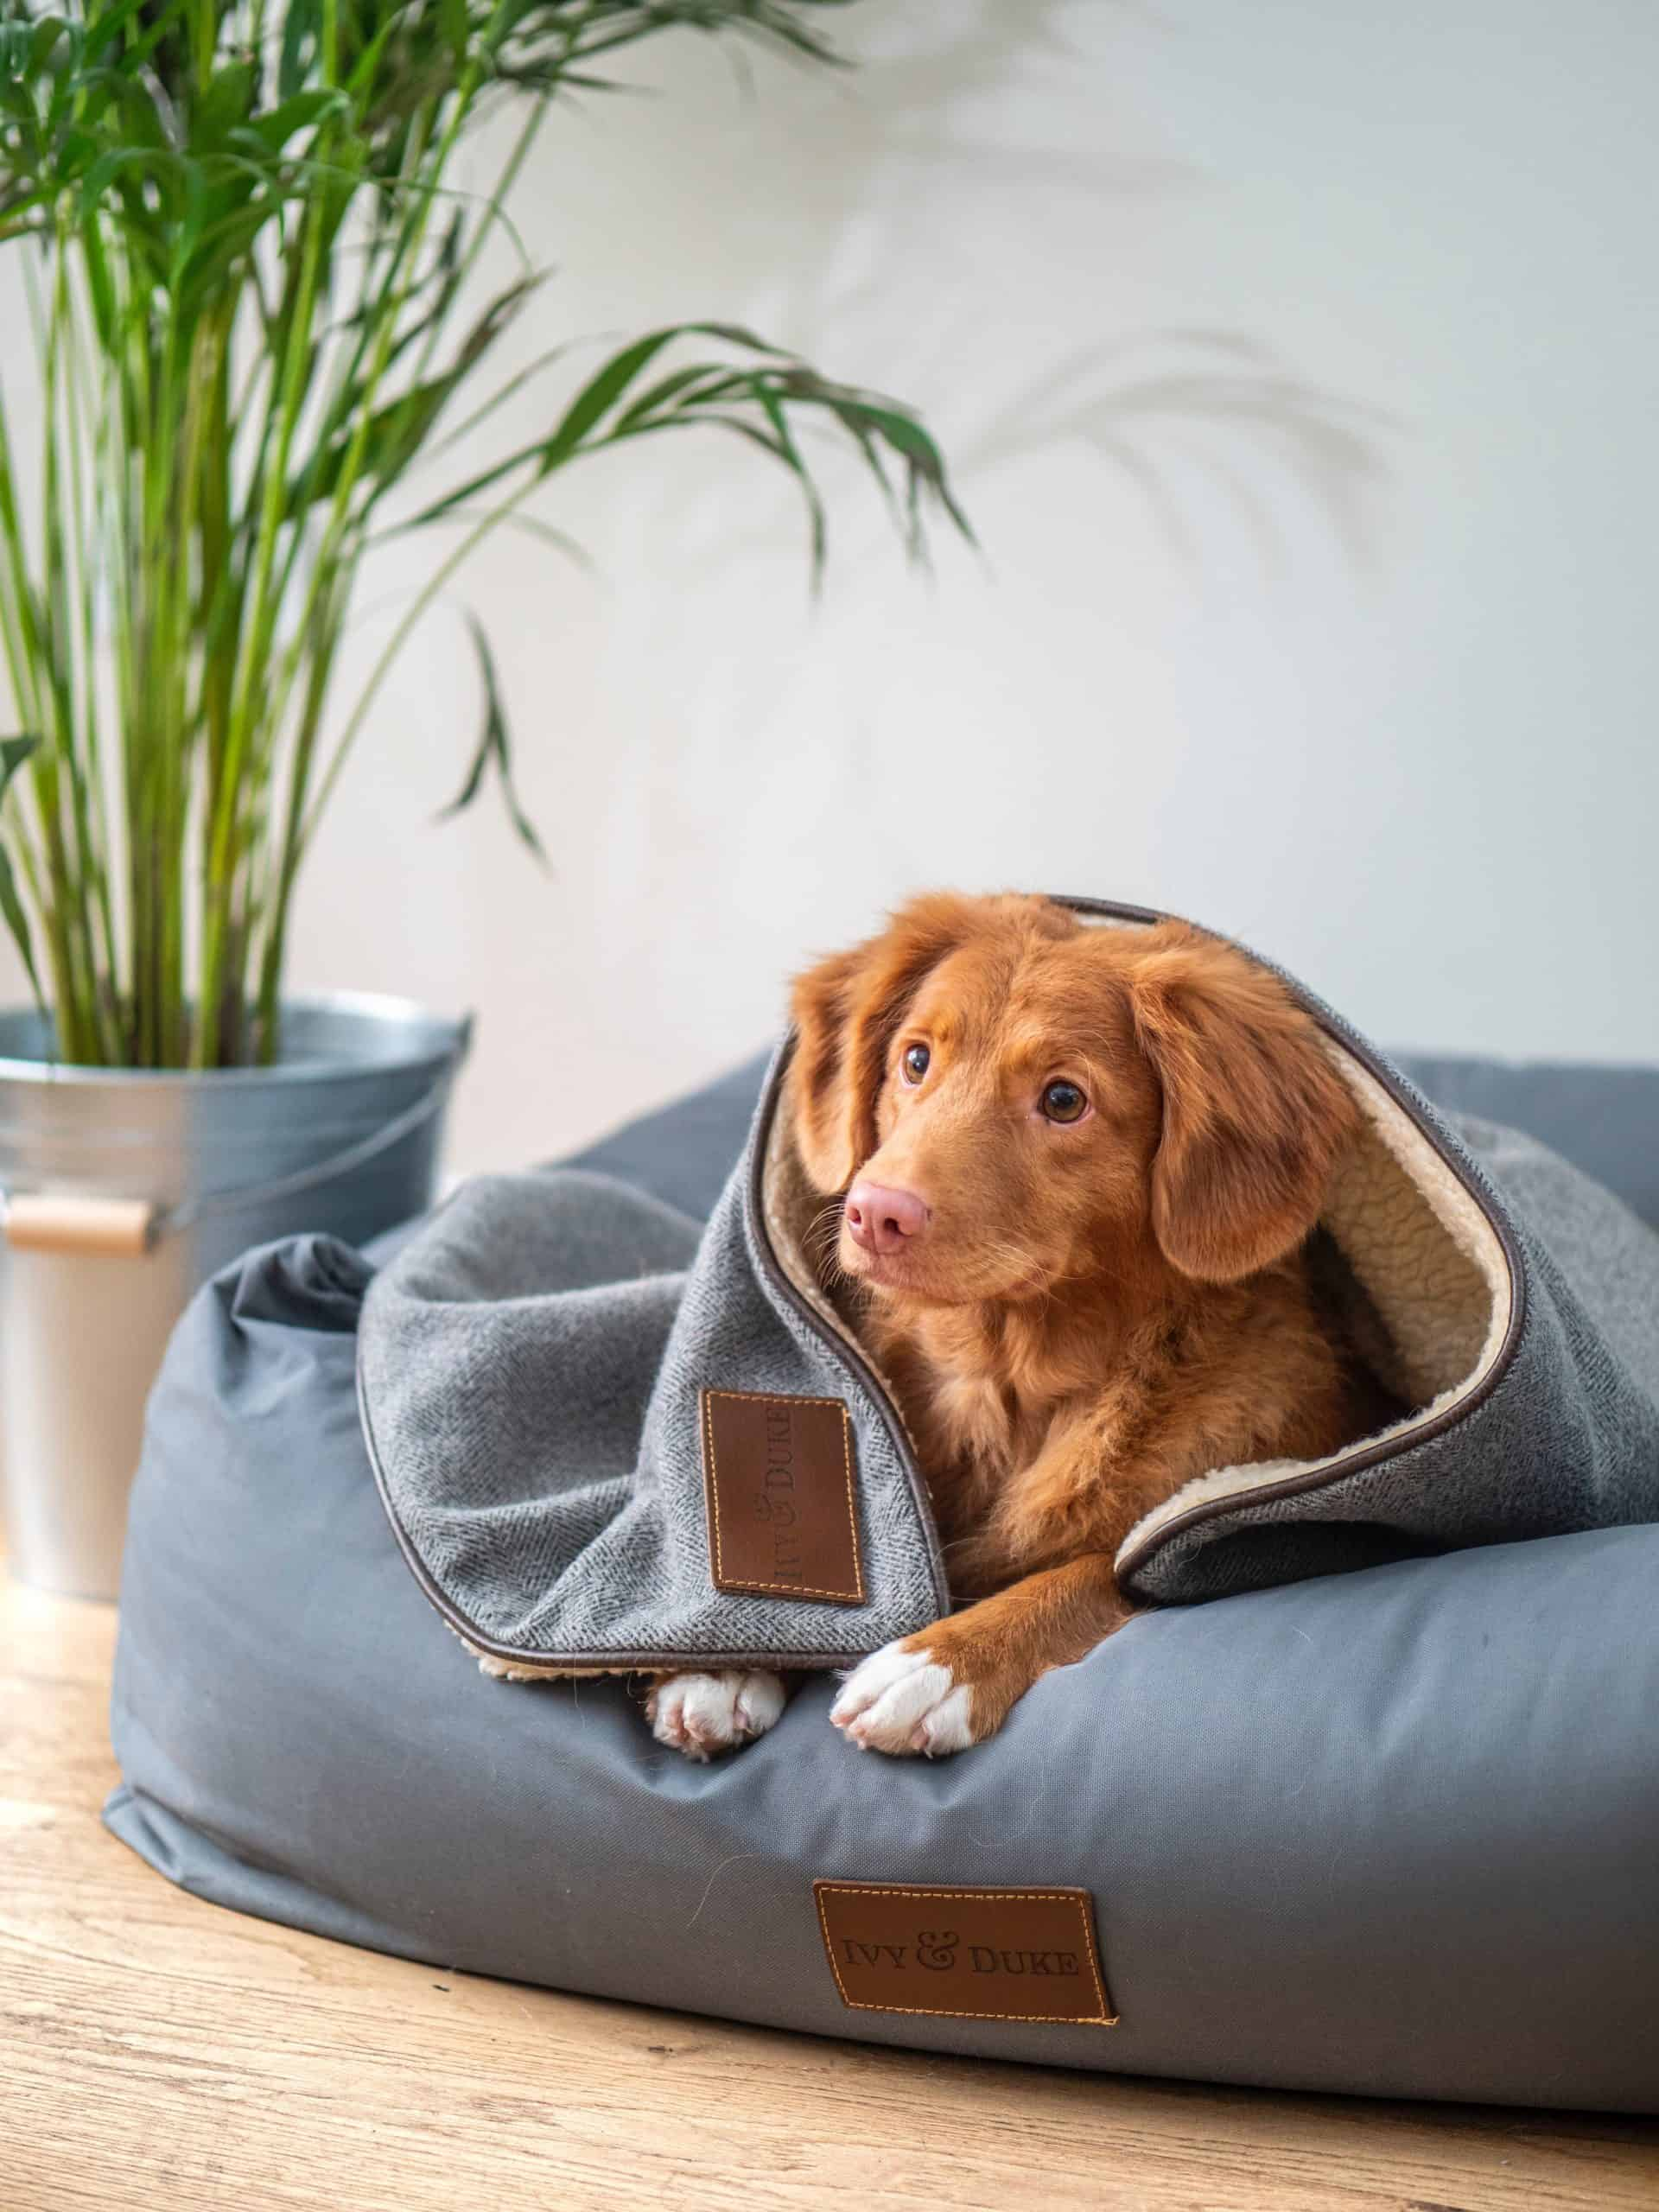 Taking Care Of A Puppy Tips: The Best Ways to Take Care